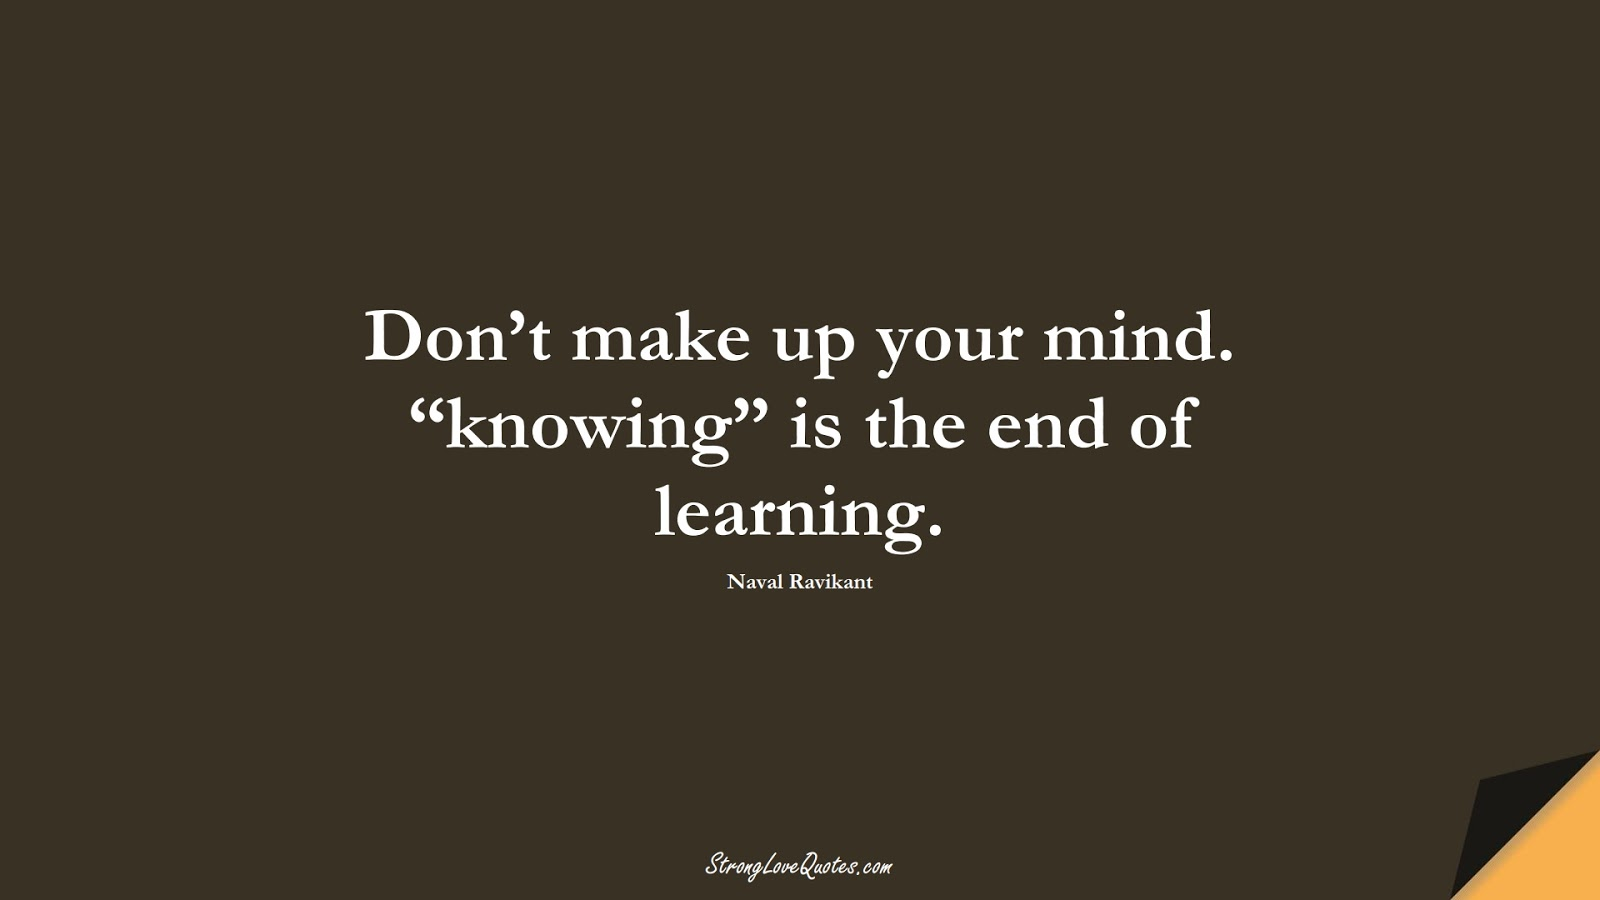 """Don't make up your mind. """"knowing"""" is the end of learning. (Naval Ravikant);  #LearningQuotes"""